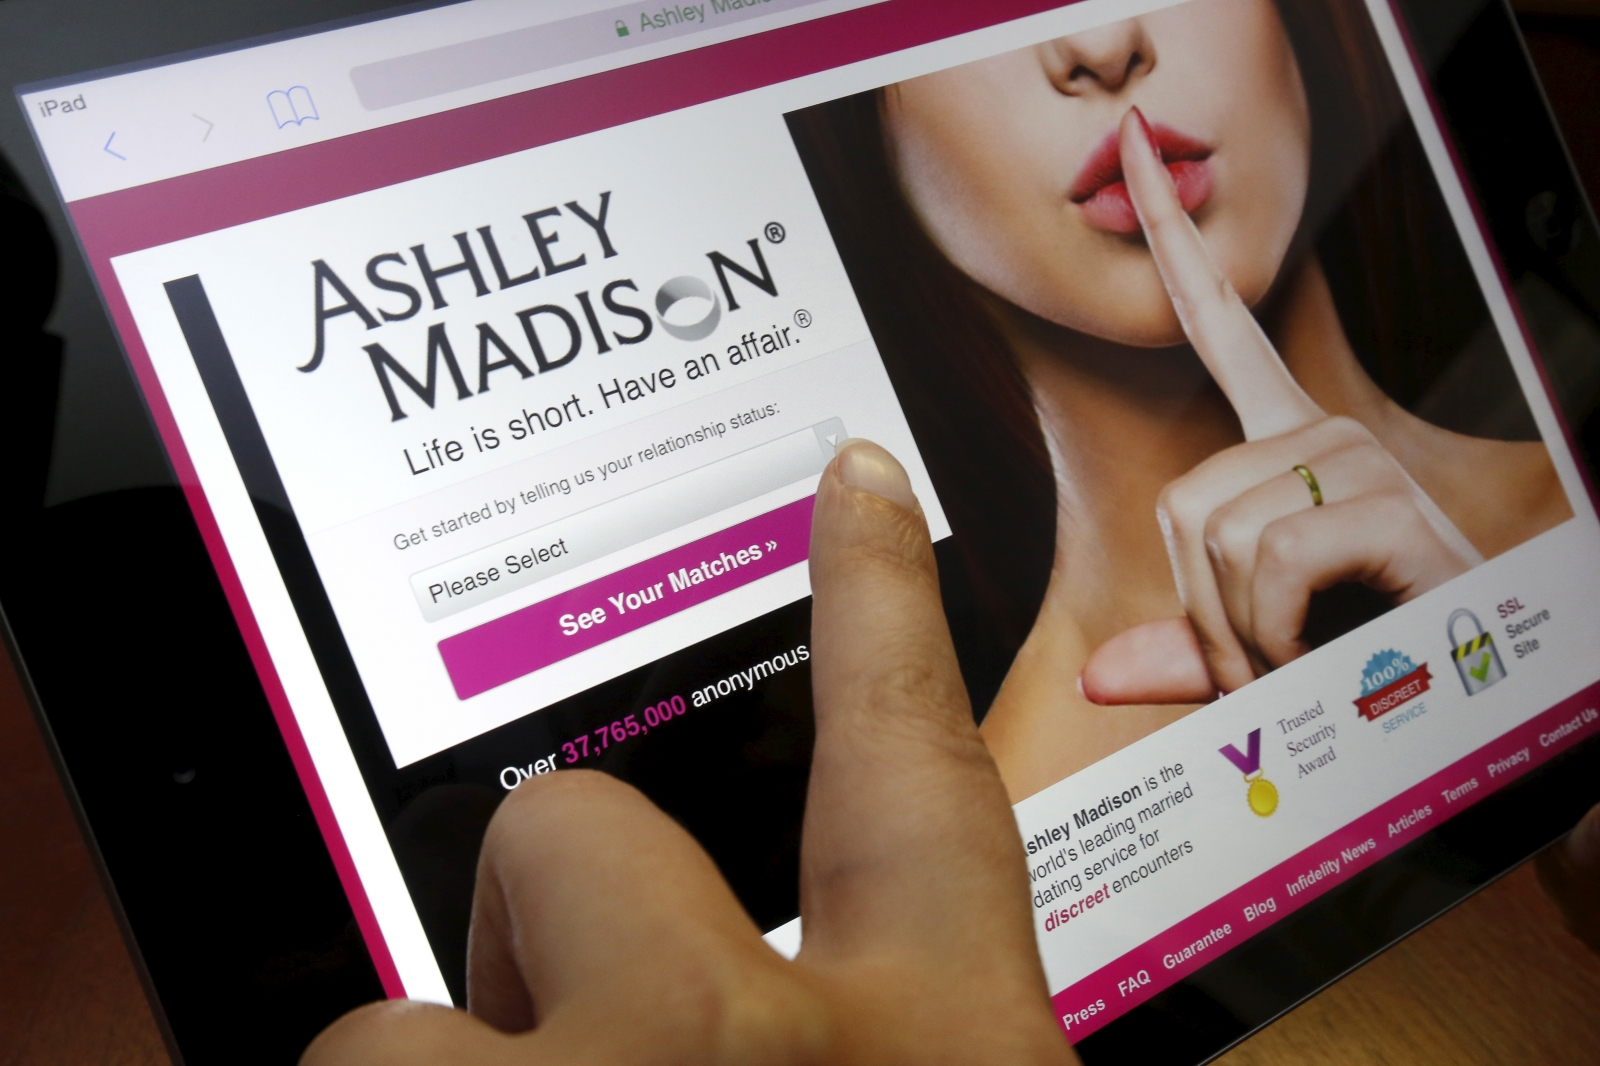 search ashley madison by address